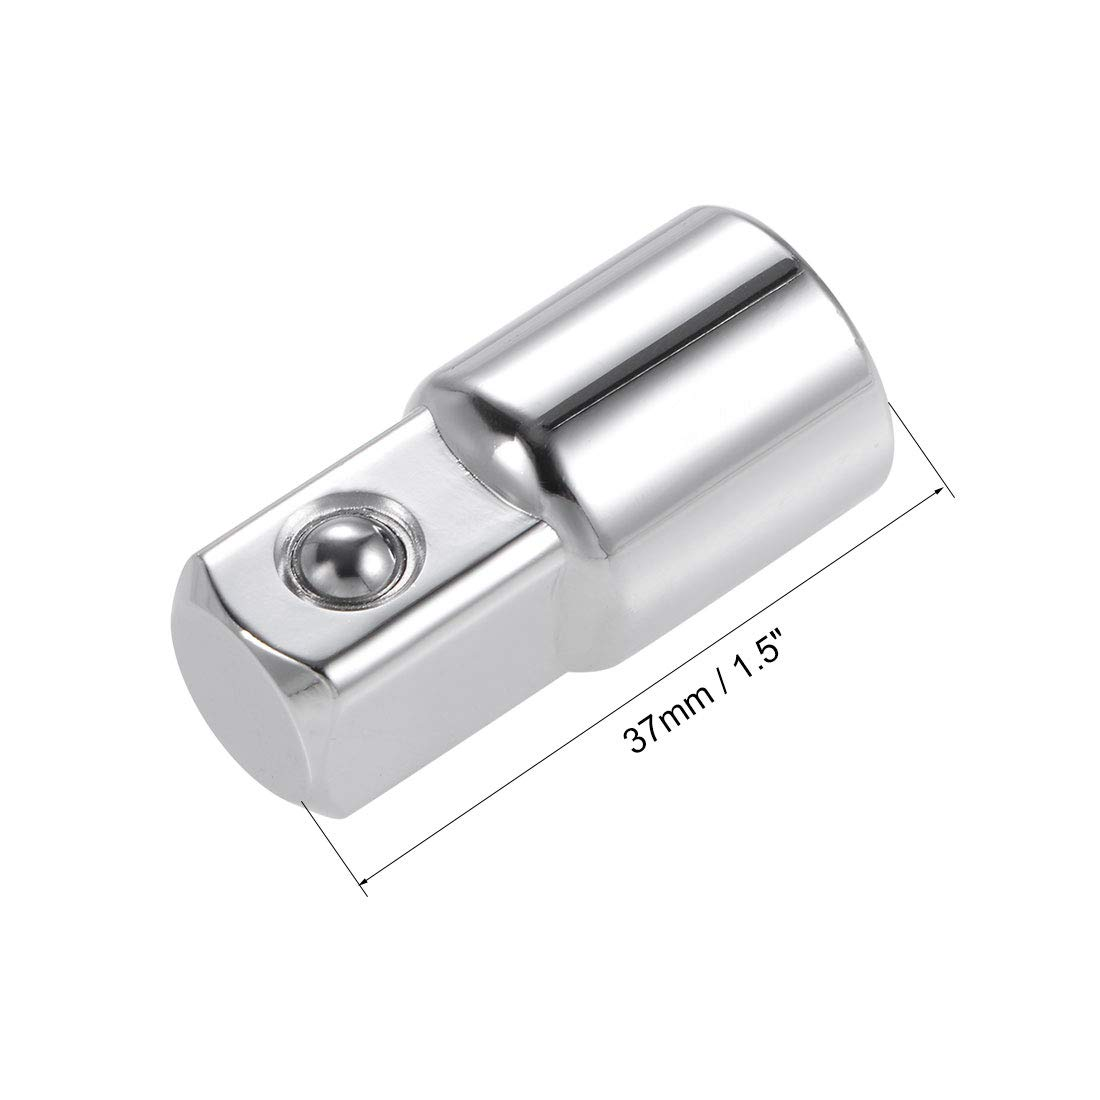 uxcell Ratchet Socket Adapter 3//8-Inch to 1//2-Inch Adaper 3//8-Inch Square Drive Cr-V Steel